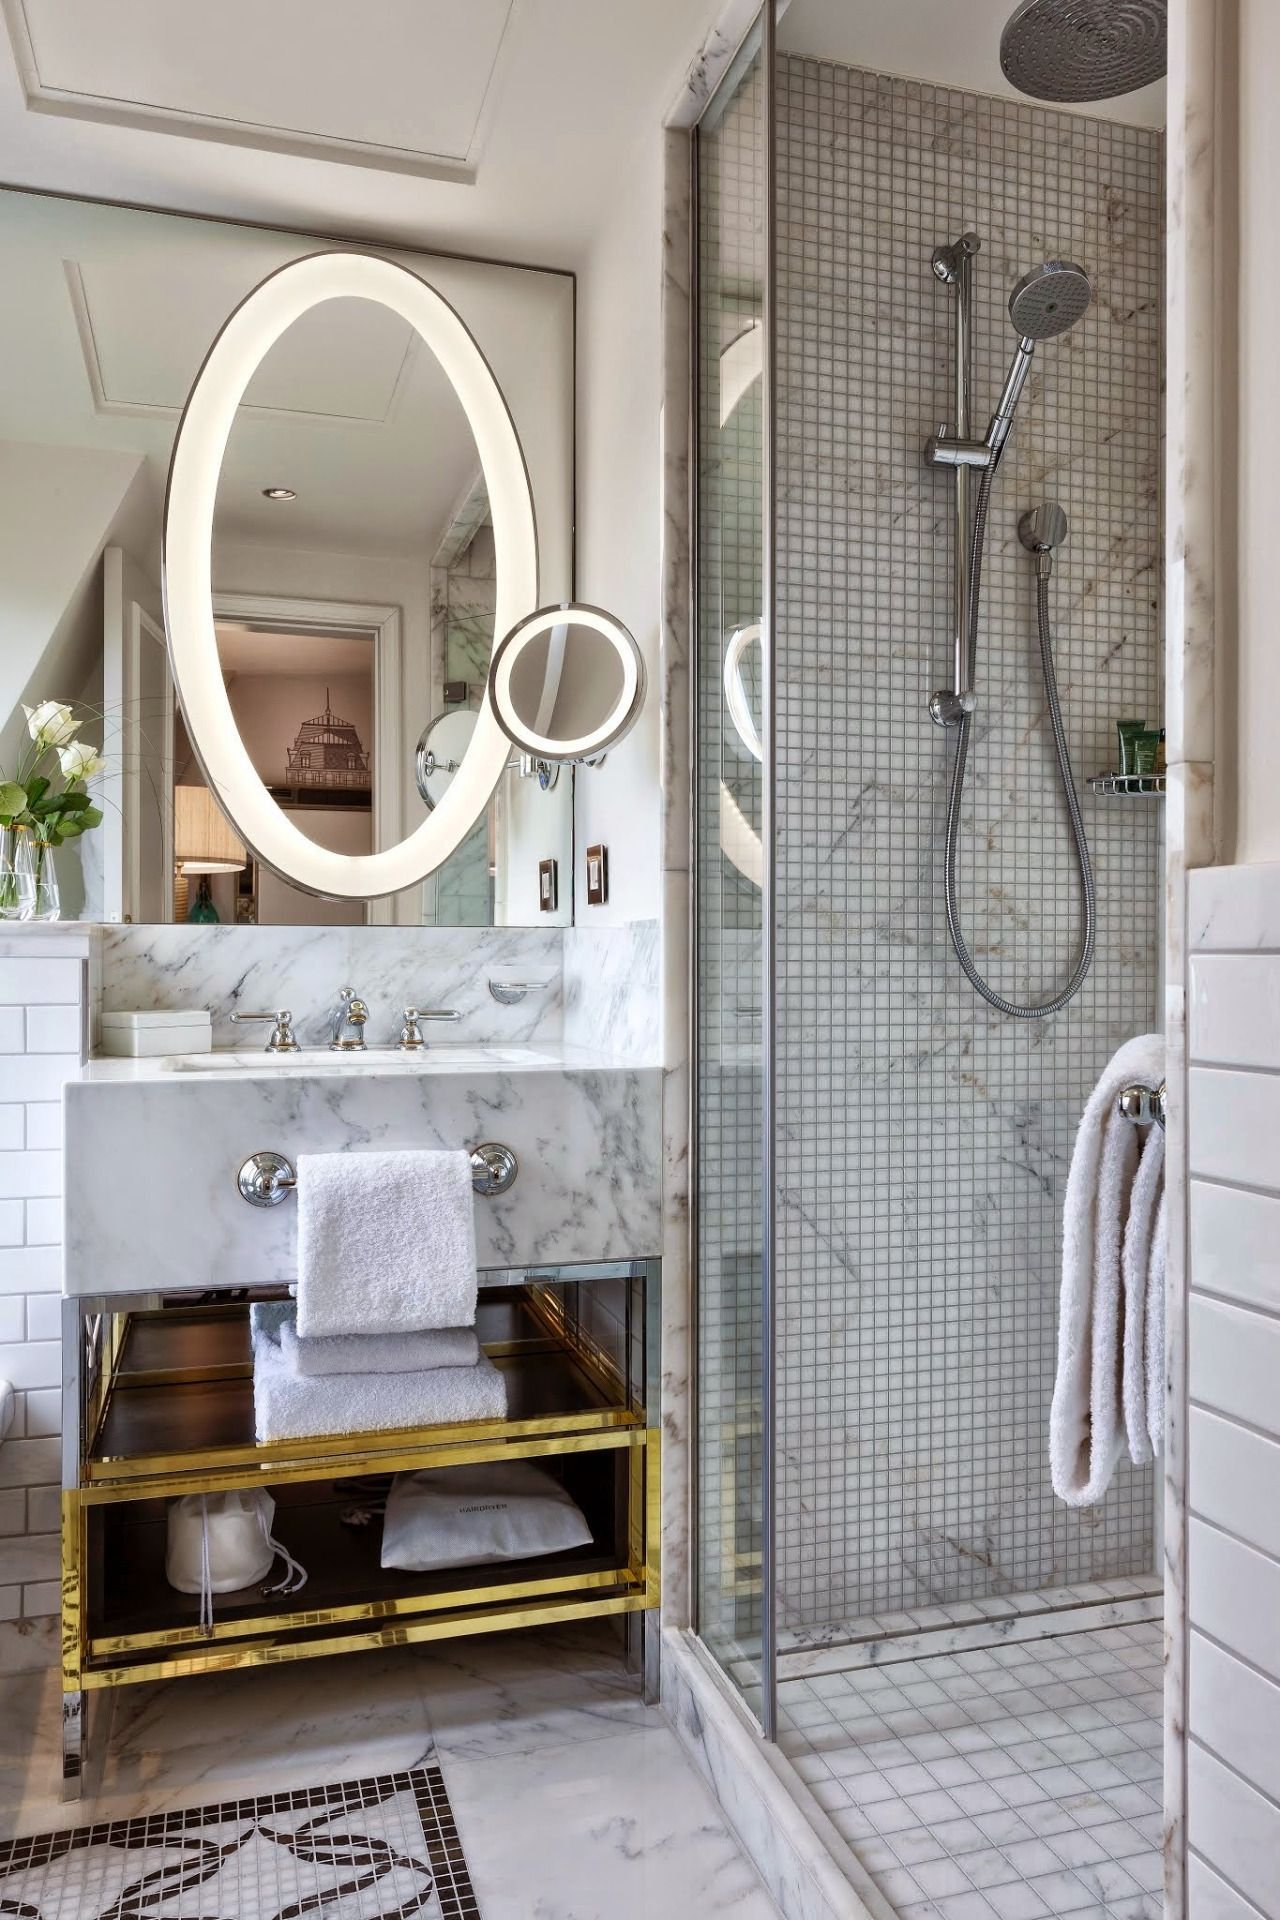 Renovation Salle De Bain Chambery ~ Polished Stone Amenities And Large Showers Make For Luxurious And